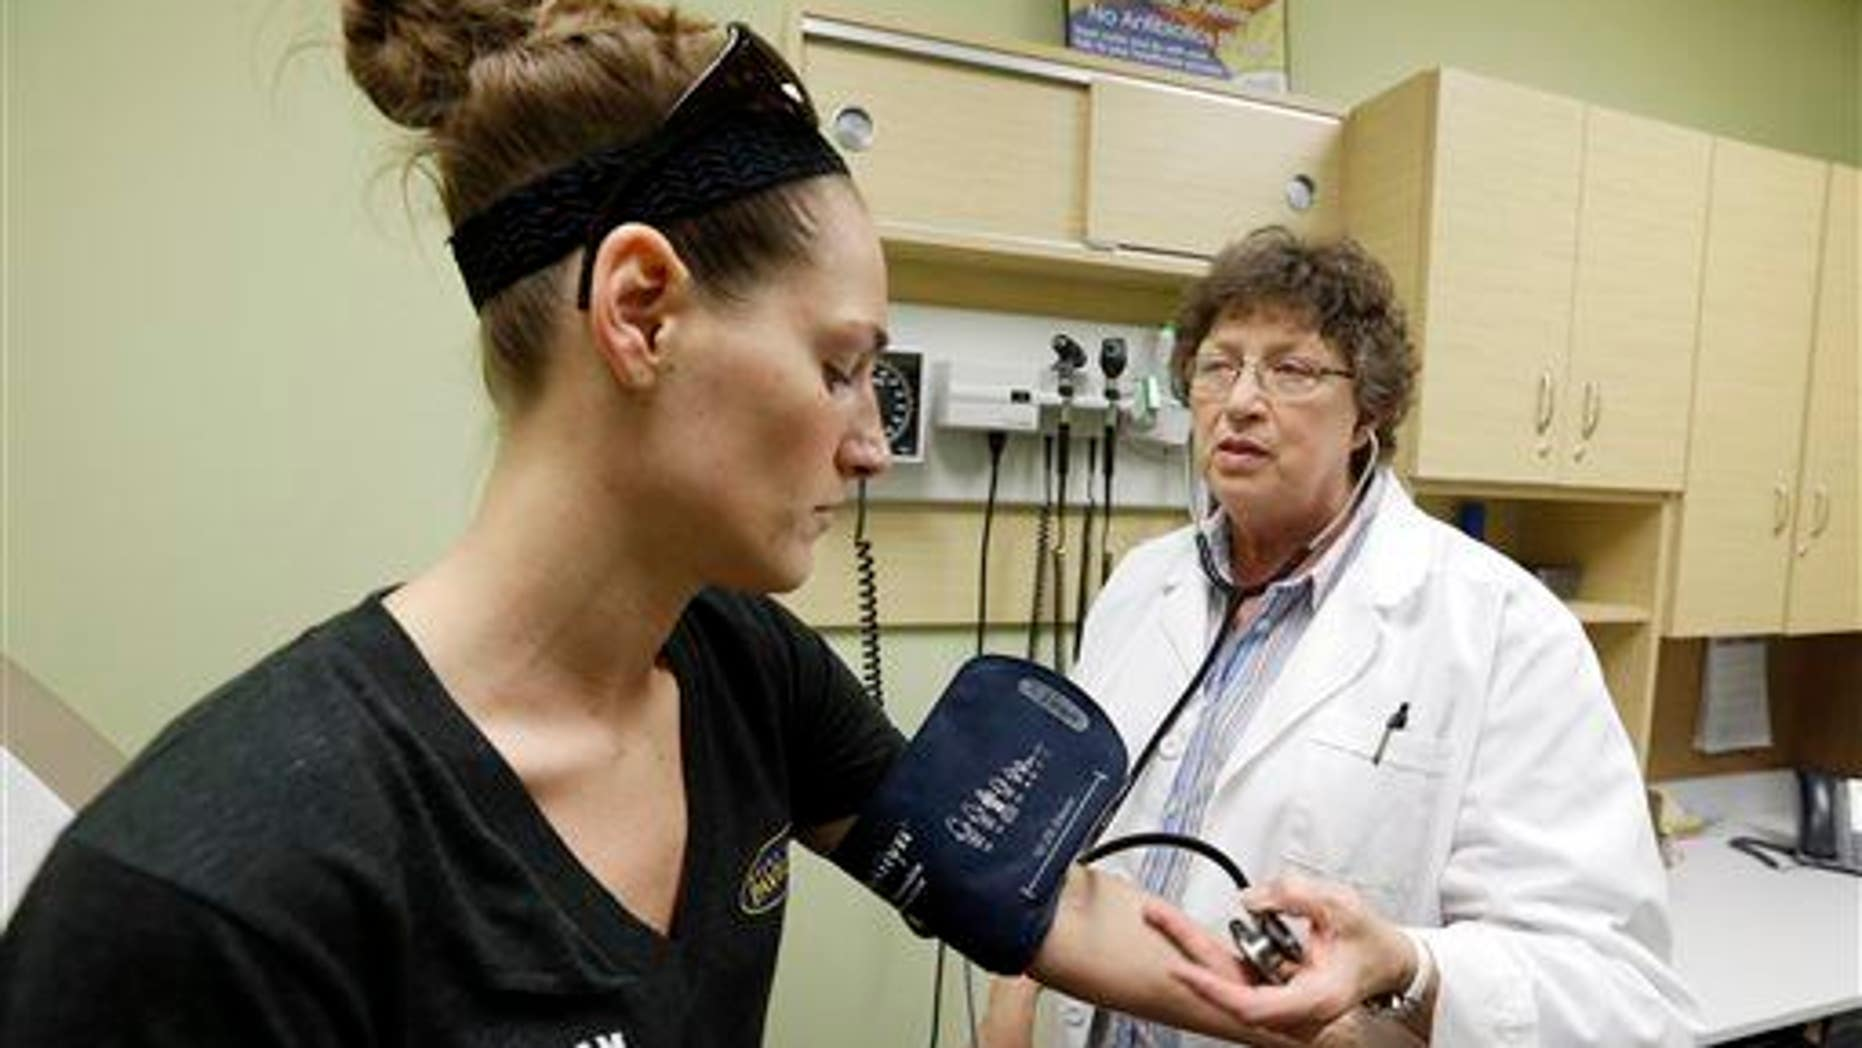 Women with PMS may want to be screened for hypertension.